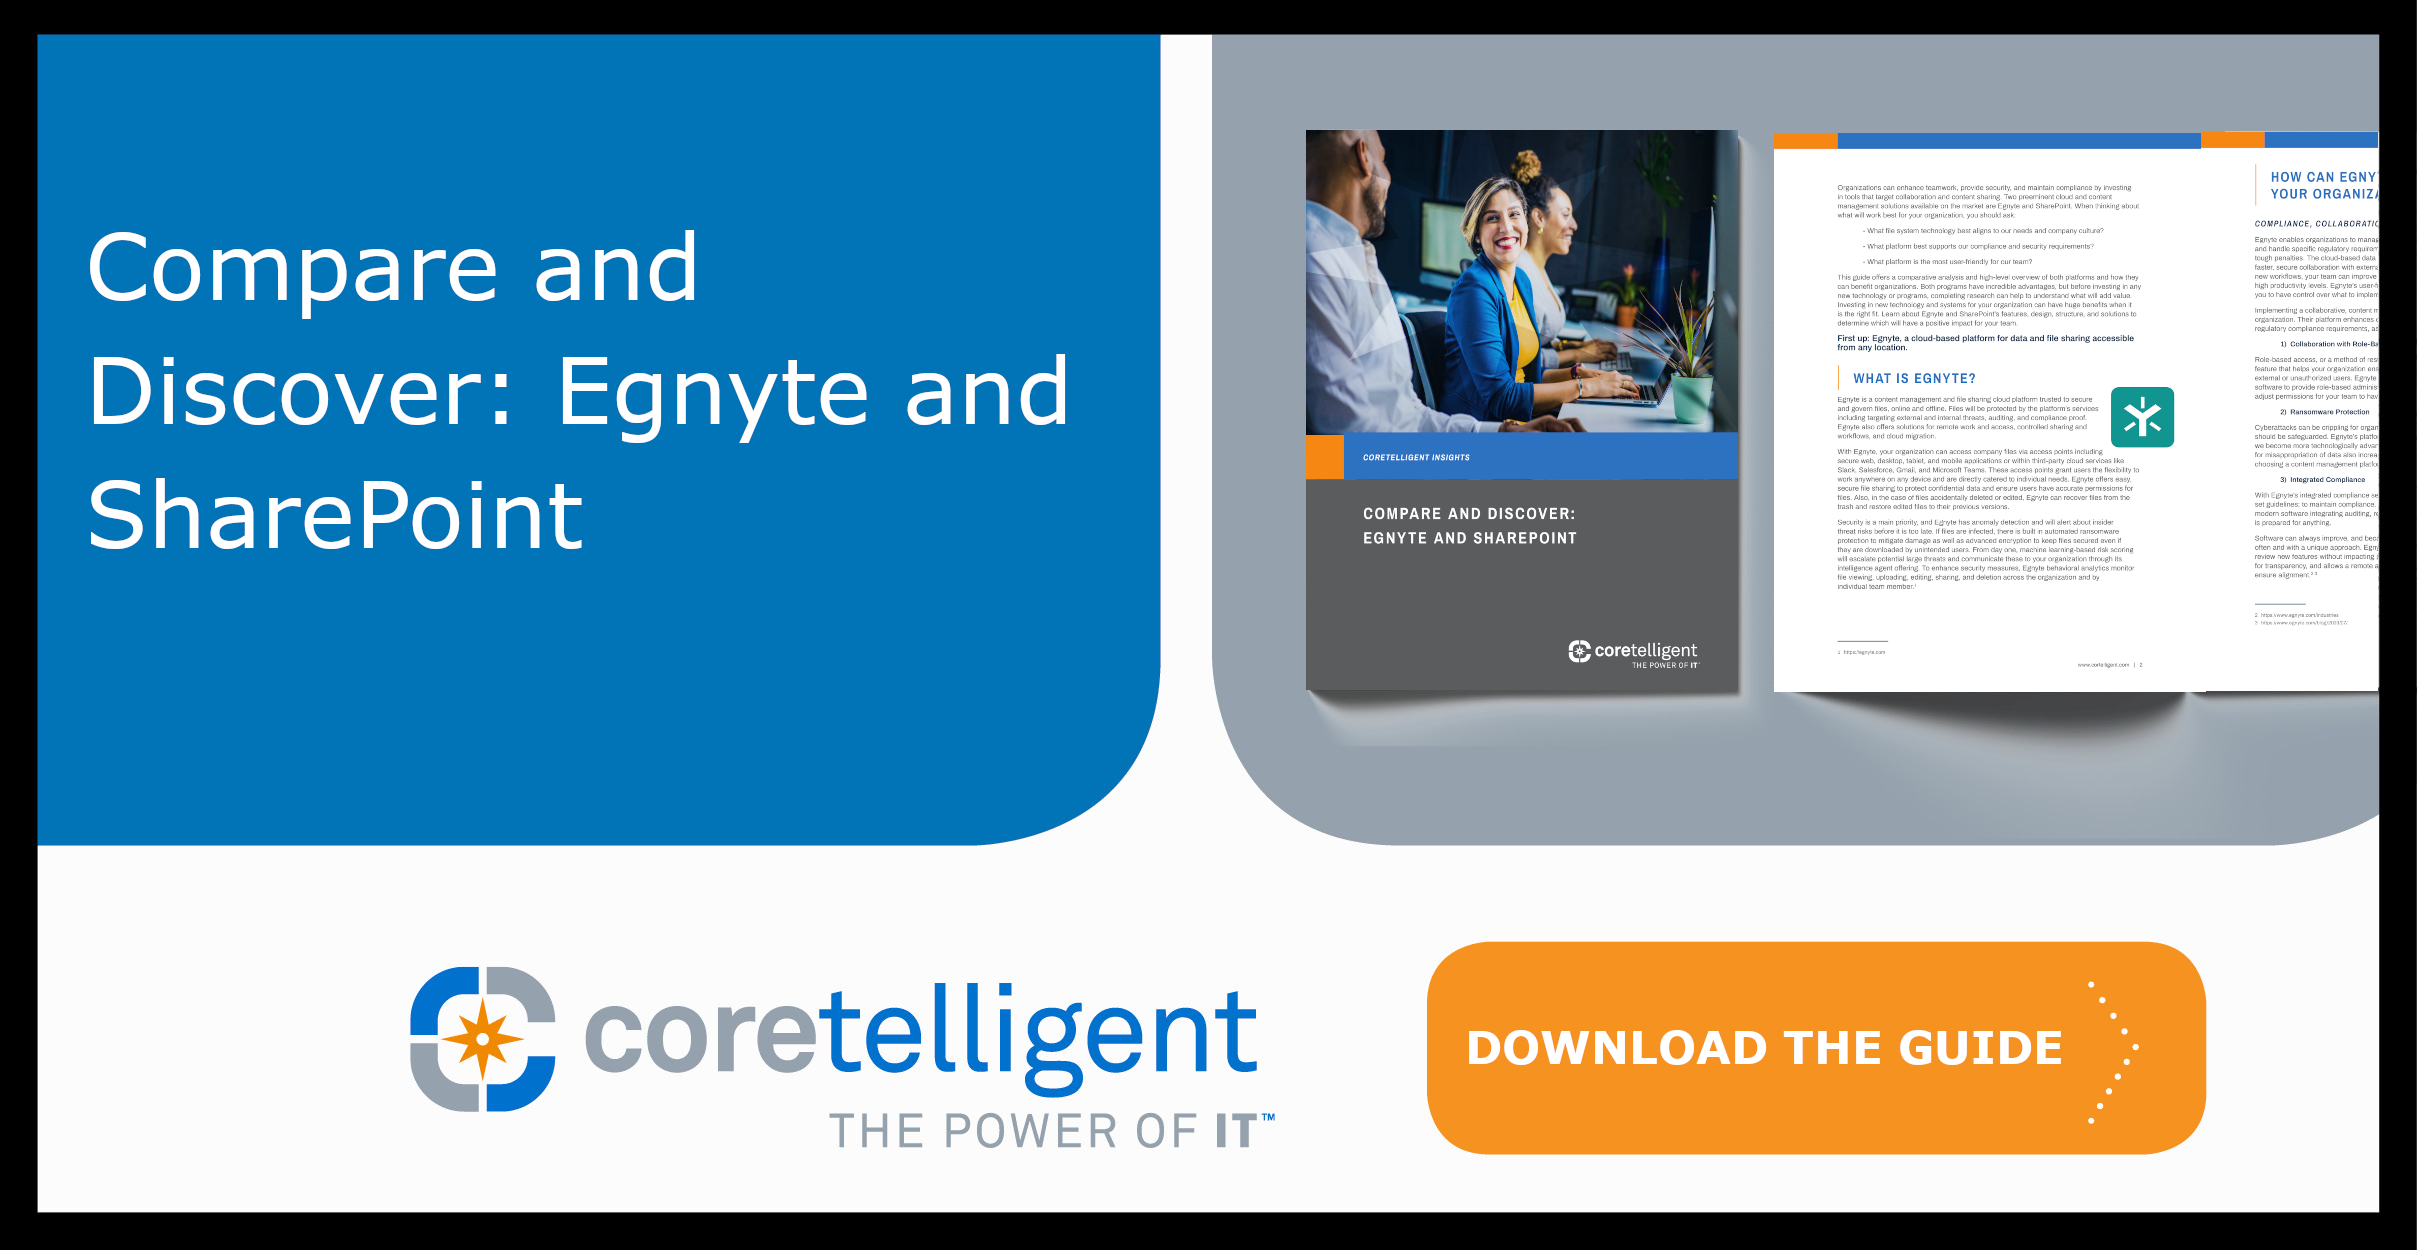 Compare Egnyte and SharePoint